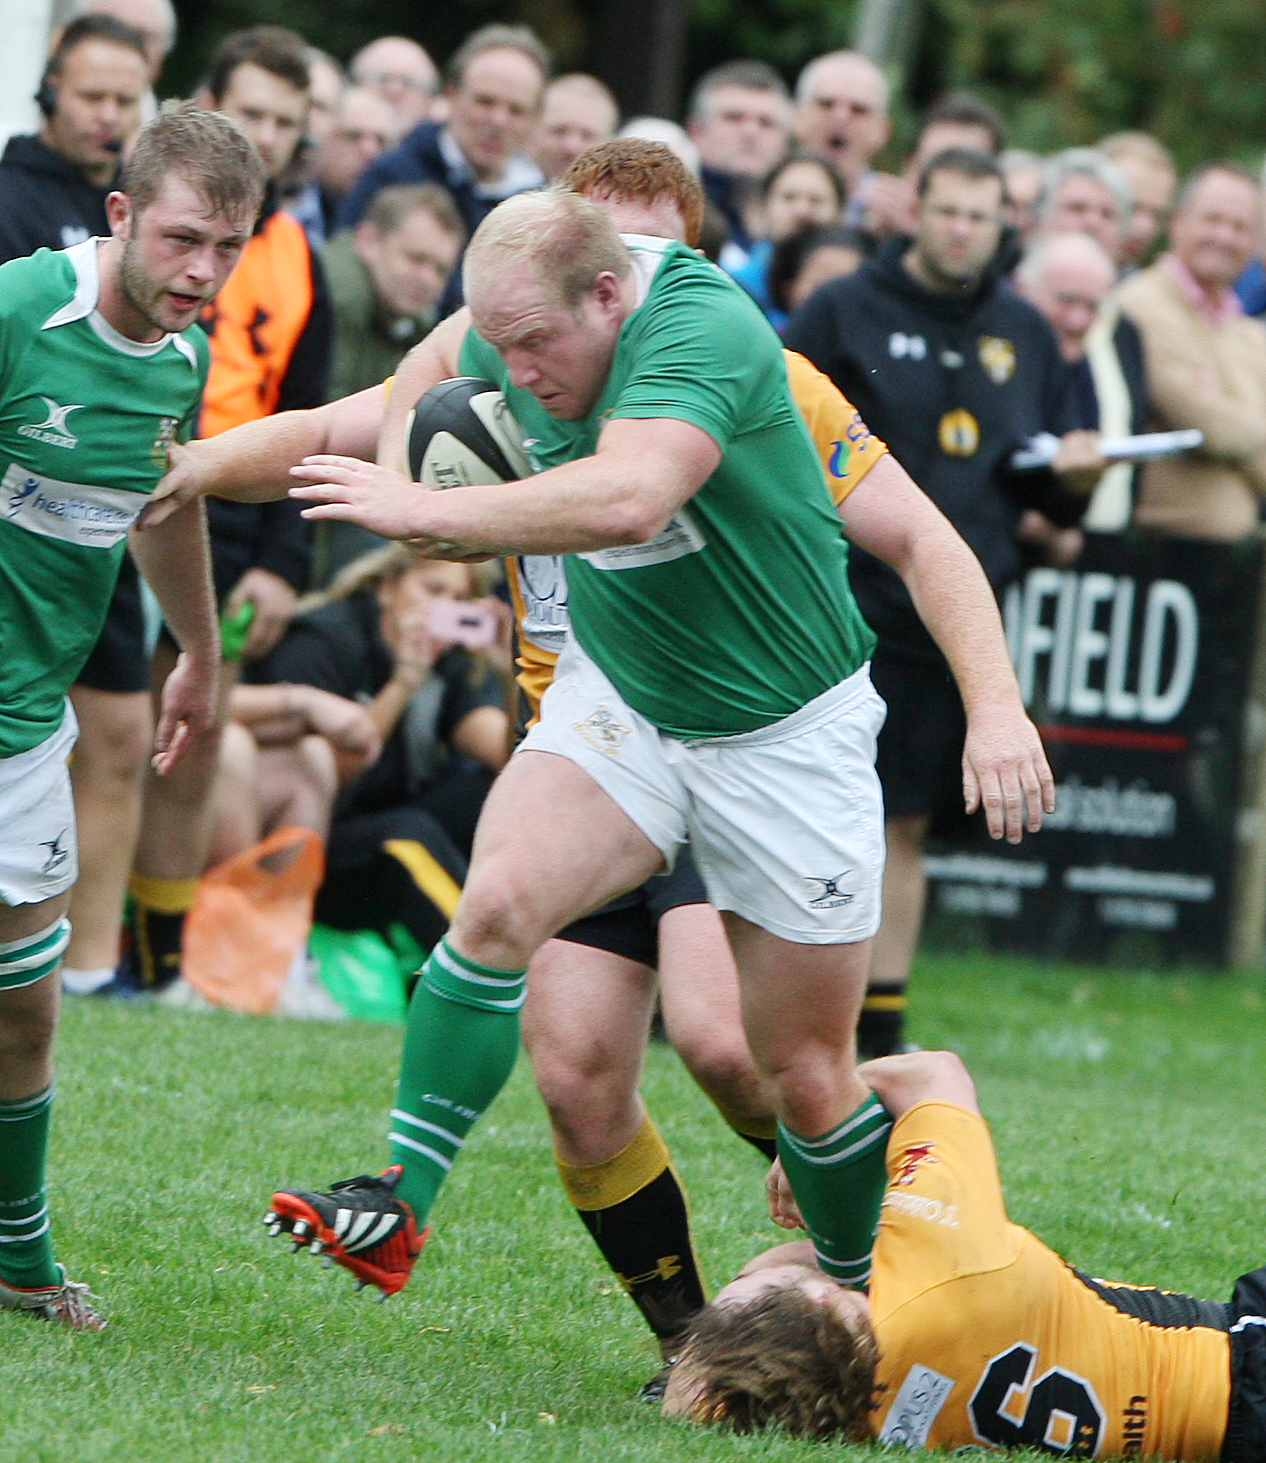 Wharfedale home in on ending poor run